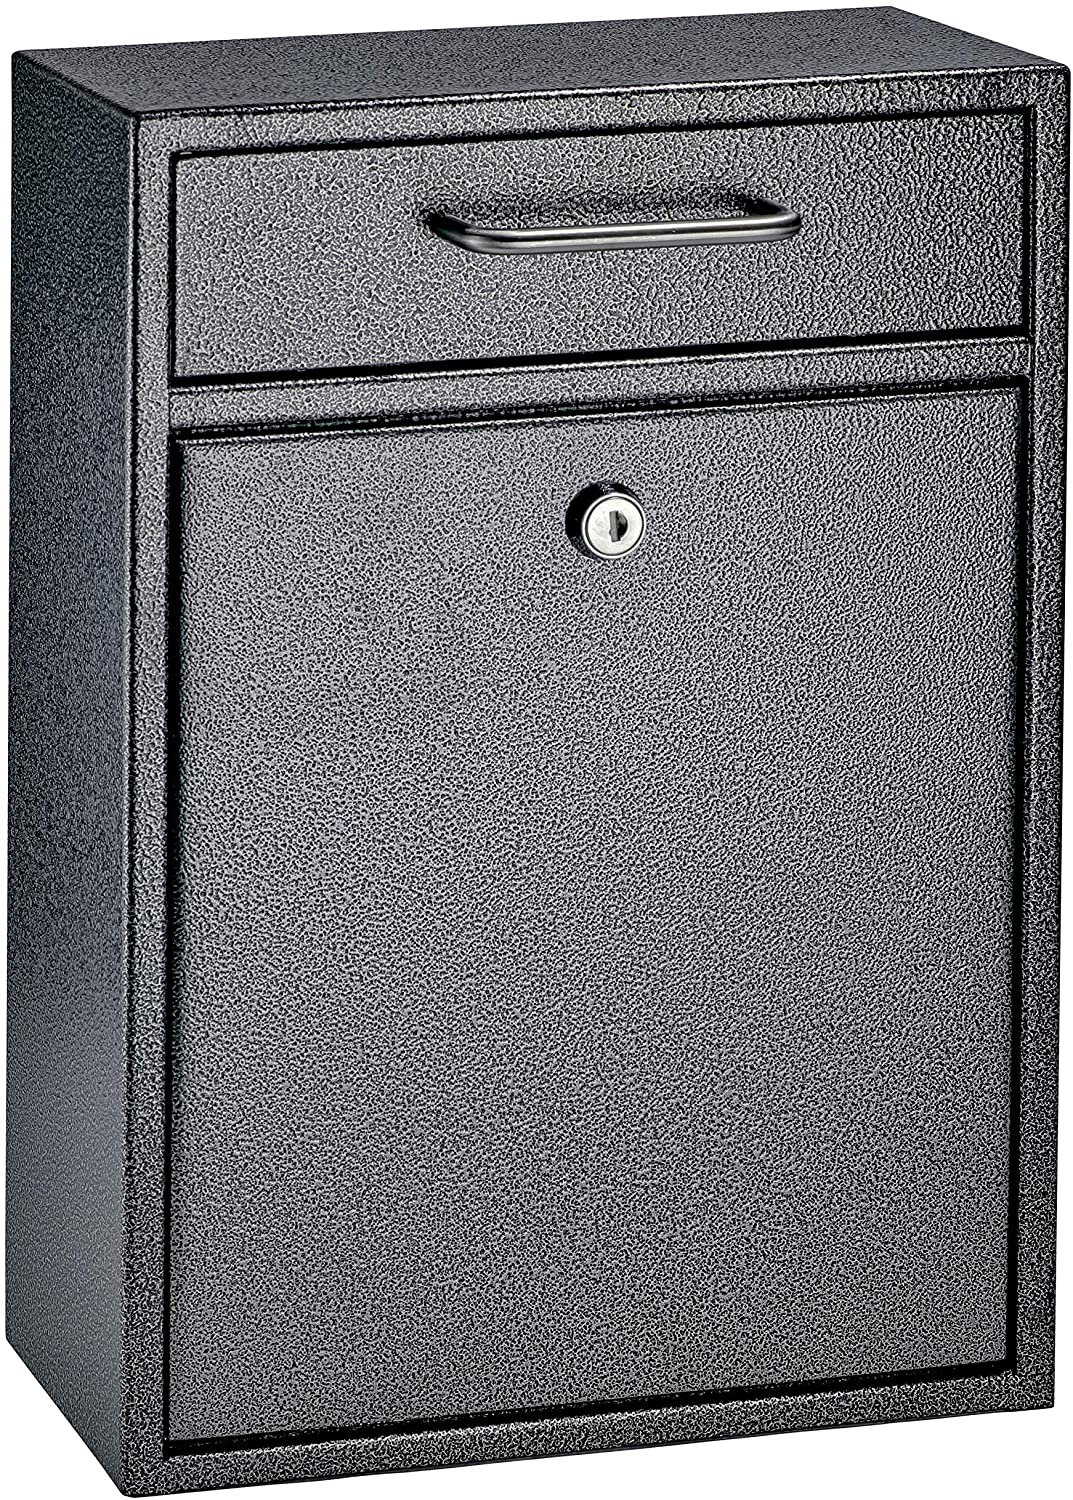 Mail Boss 7413 High Security Steel Locking Wall Mounted Mailbox-Office Comment Letter Deposit, Galaxy Drop Box,Medium